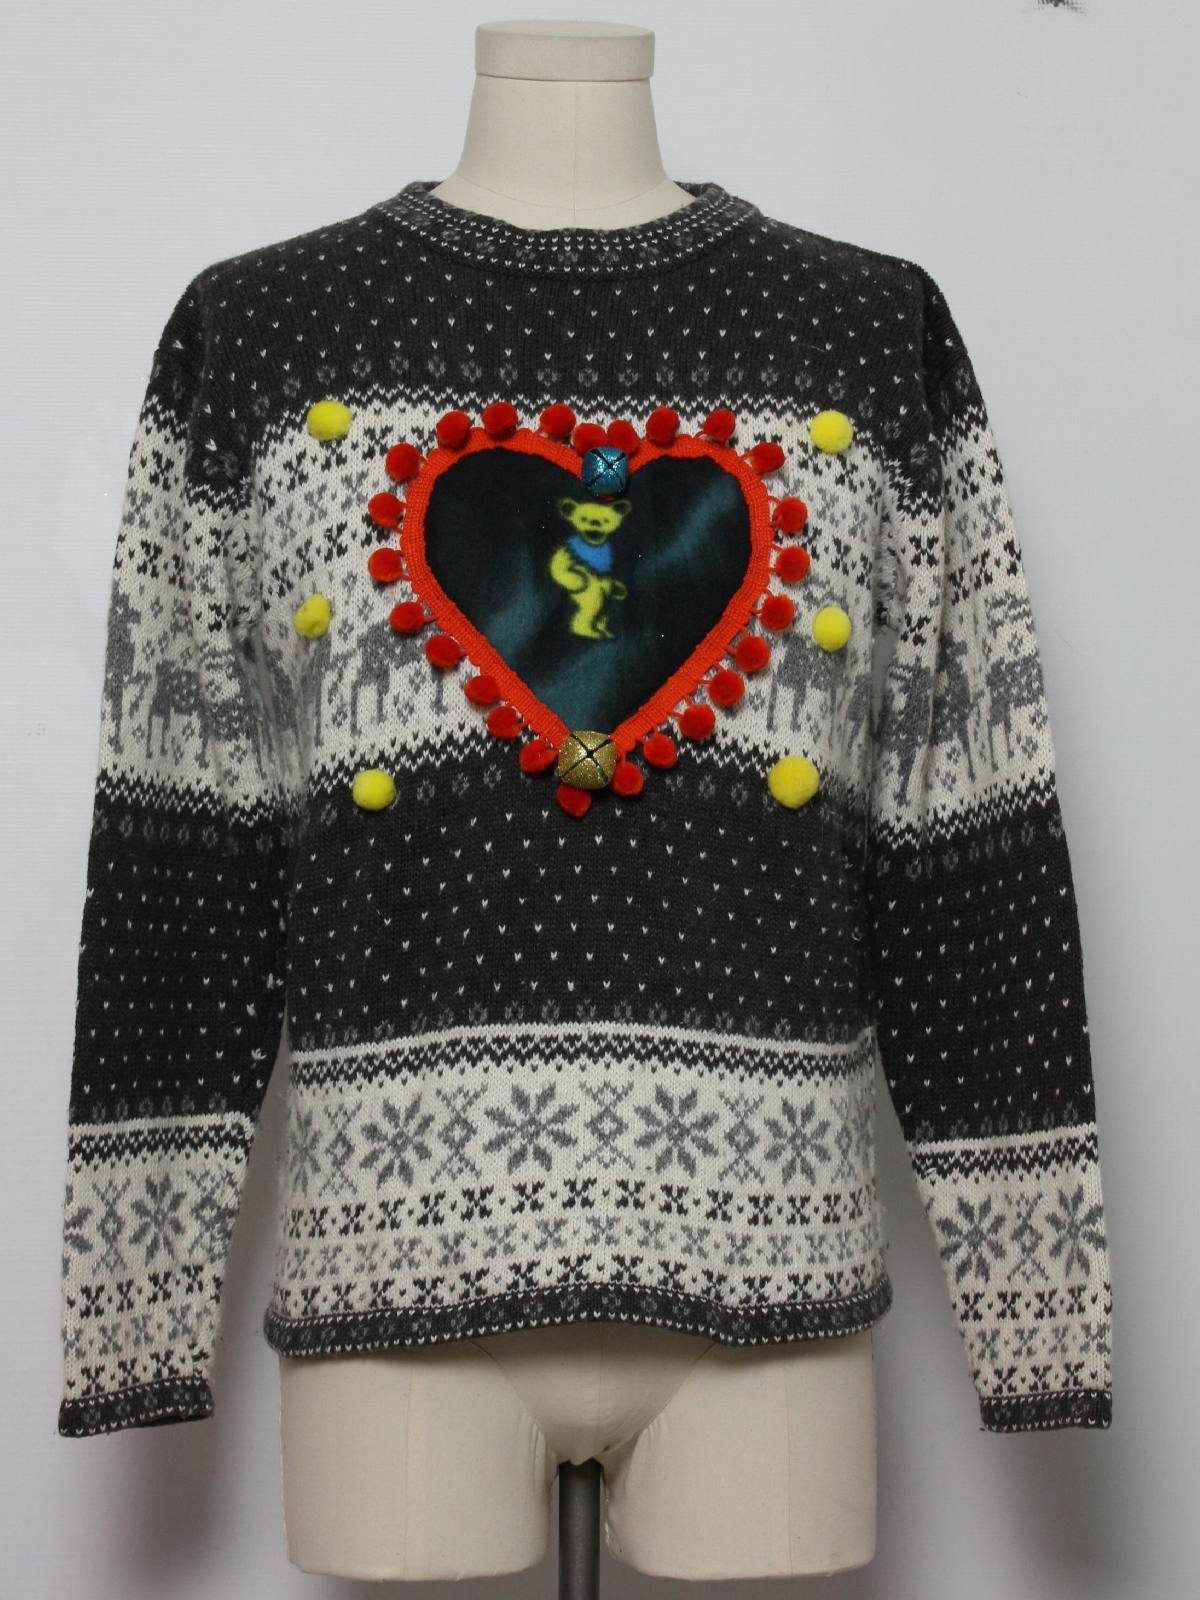 Grateful Dead Ugly Christmas Sweater: -Erika- Unisex brownish grey ...